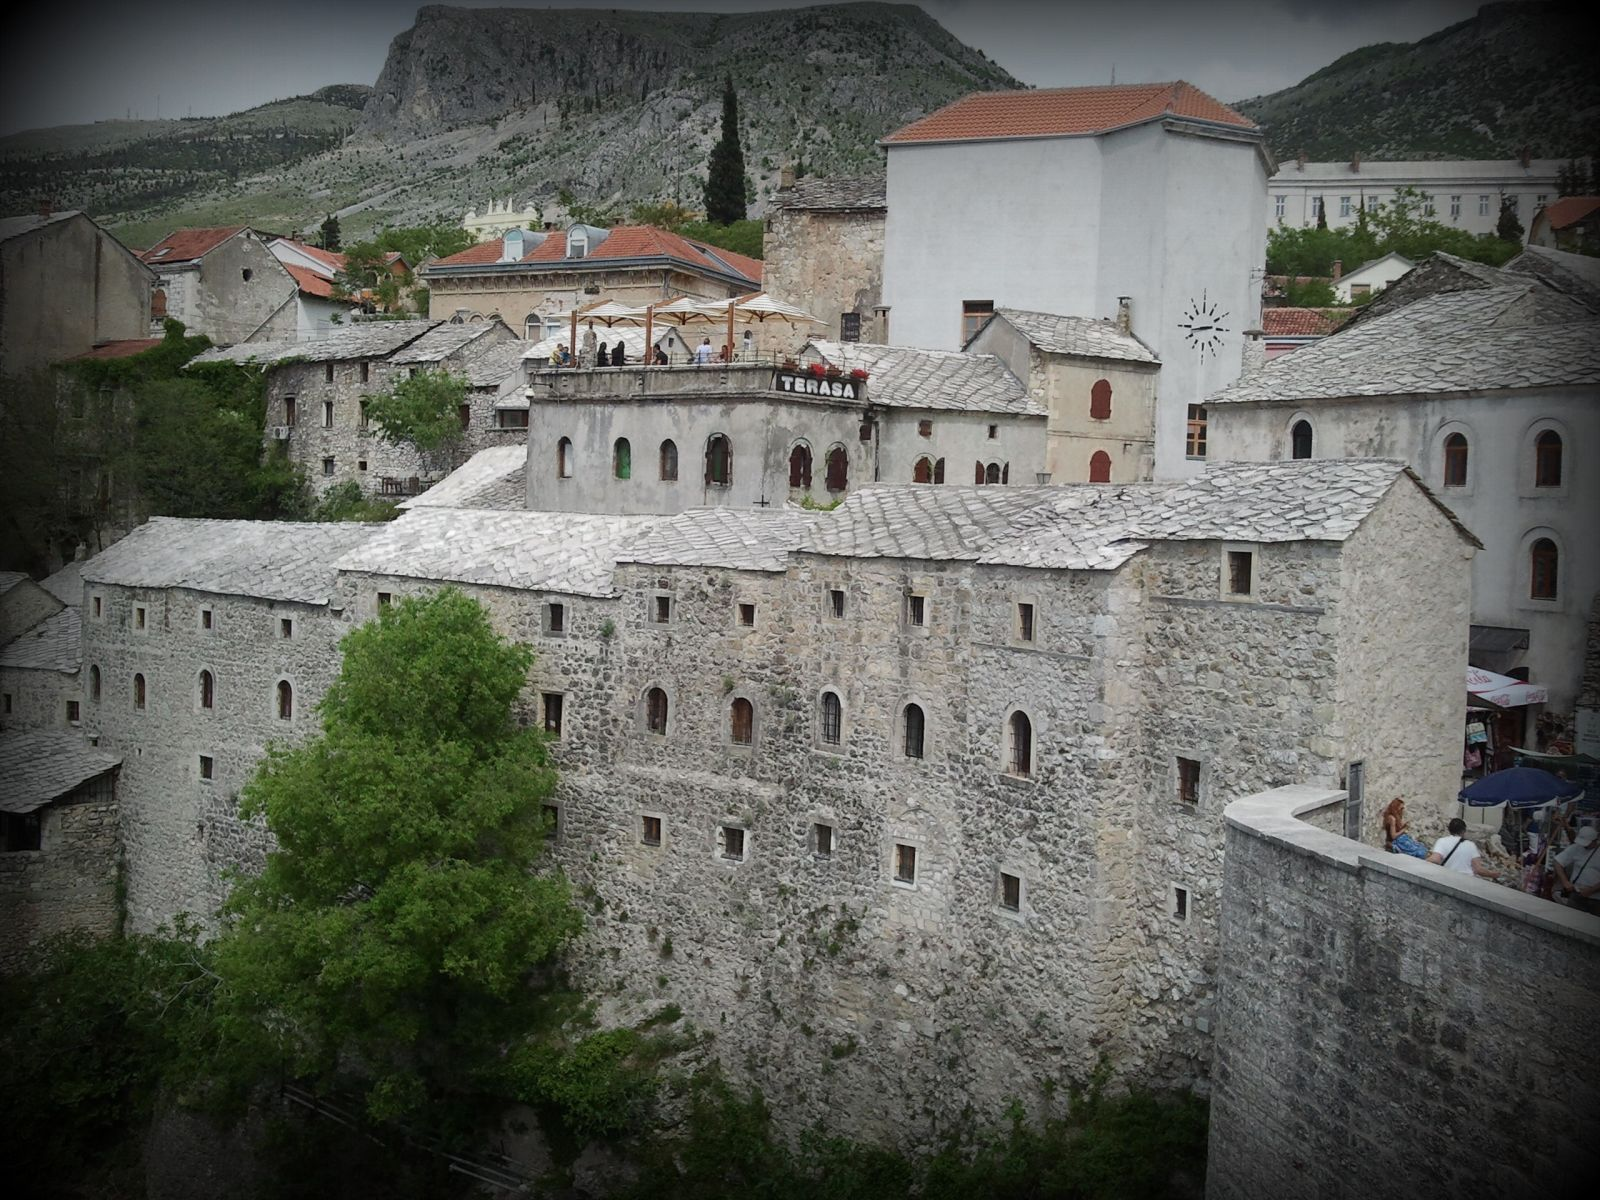 -images-excursions-mostar-private-tour-mostar-private-tour-007.jpg